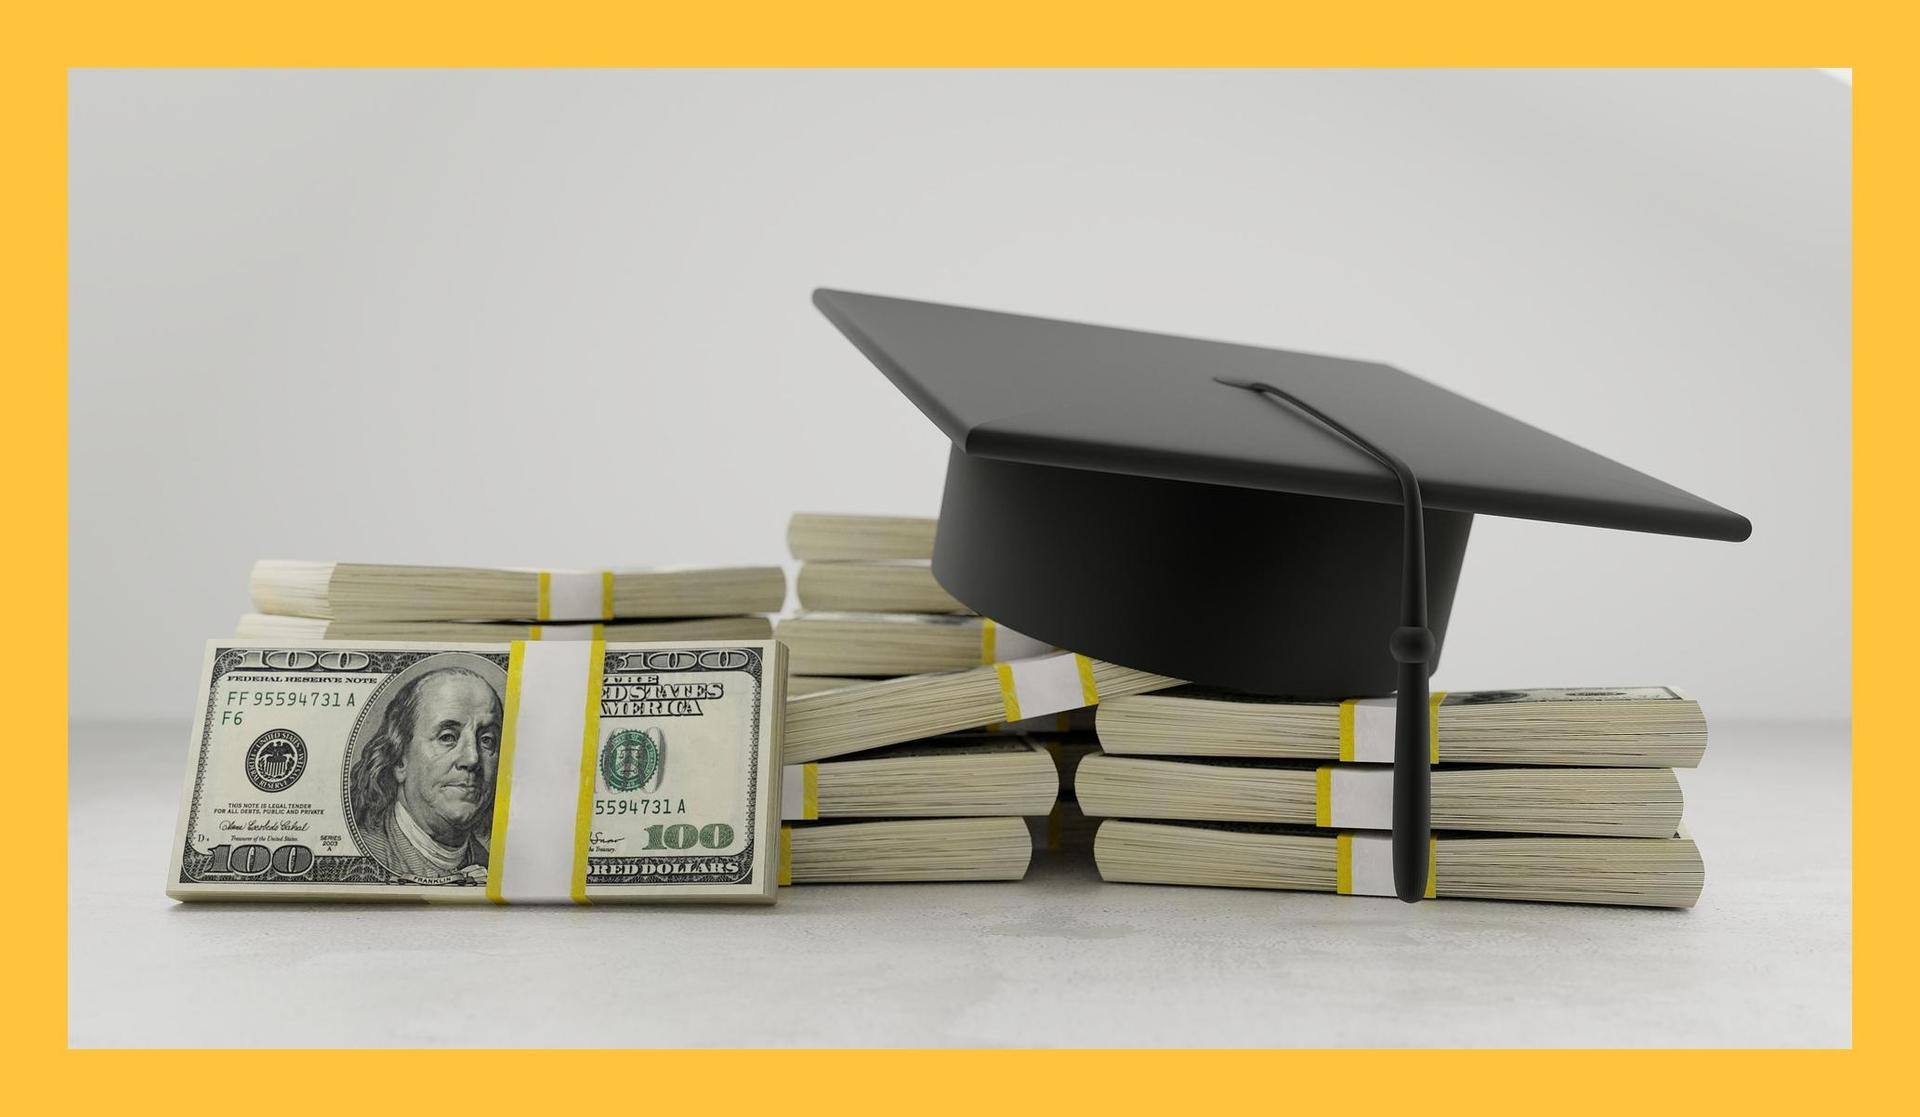 Image of Graduation Cap and money